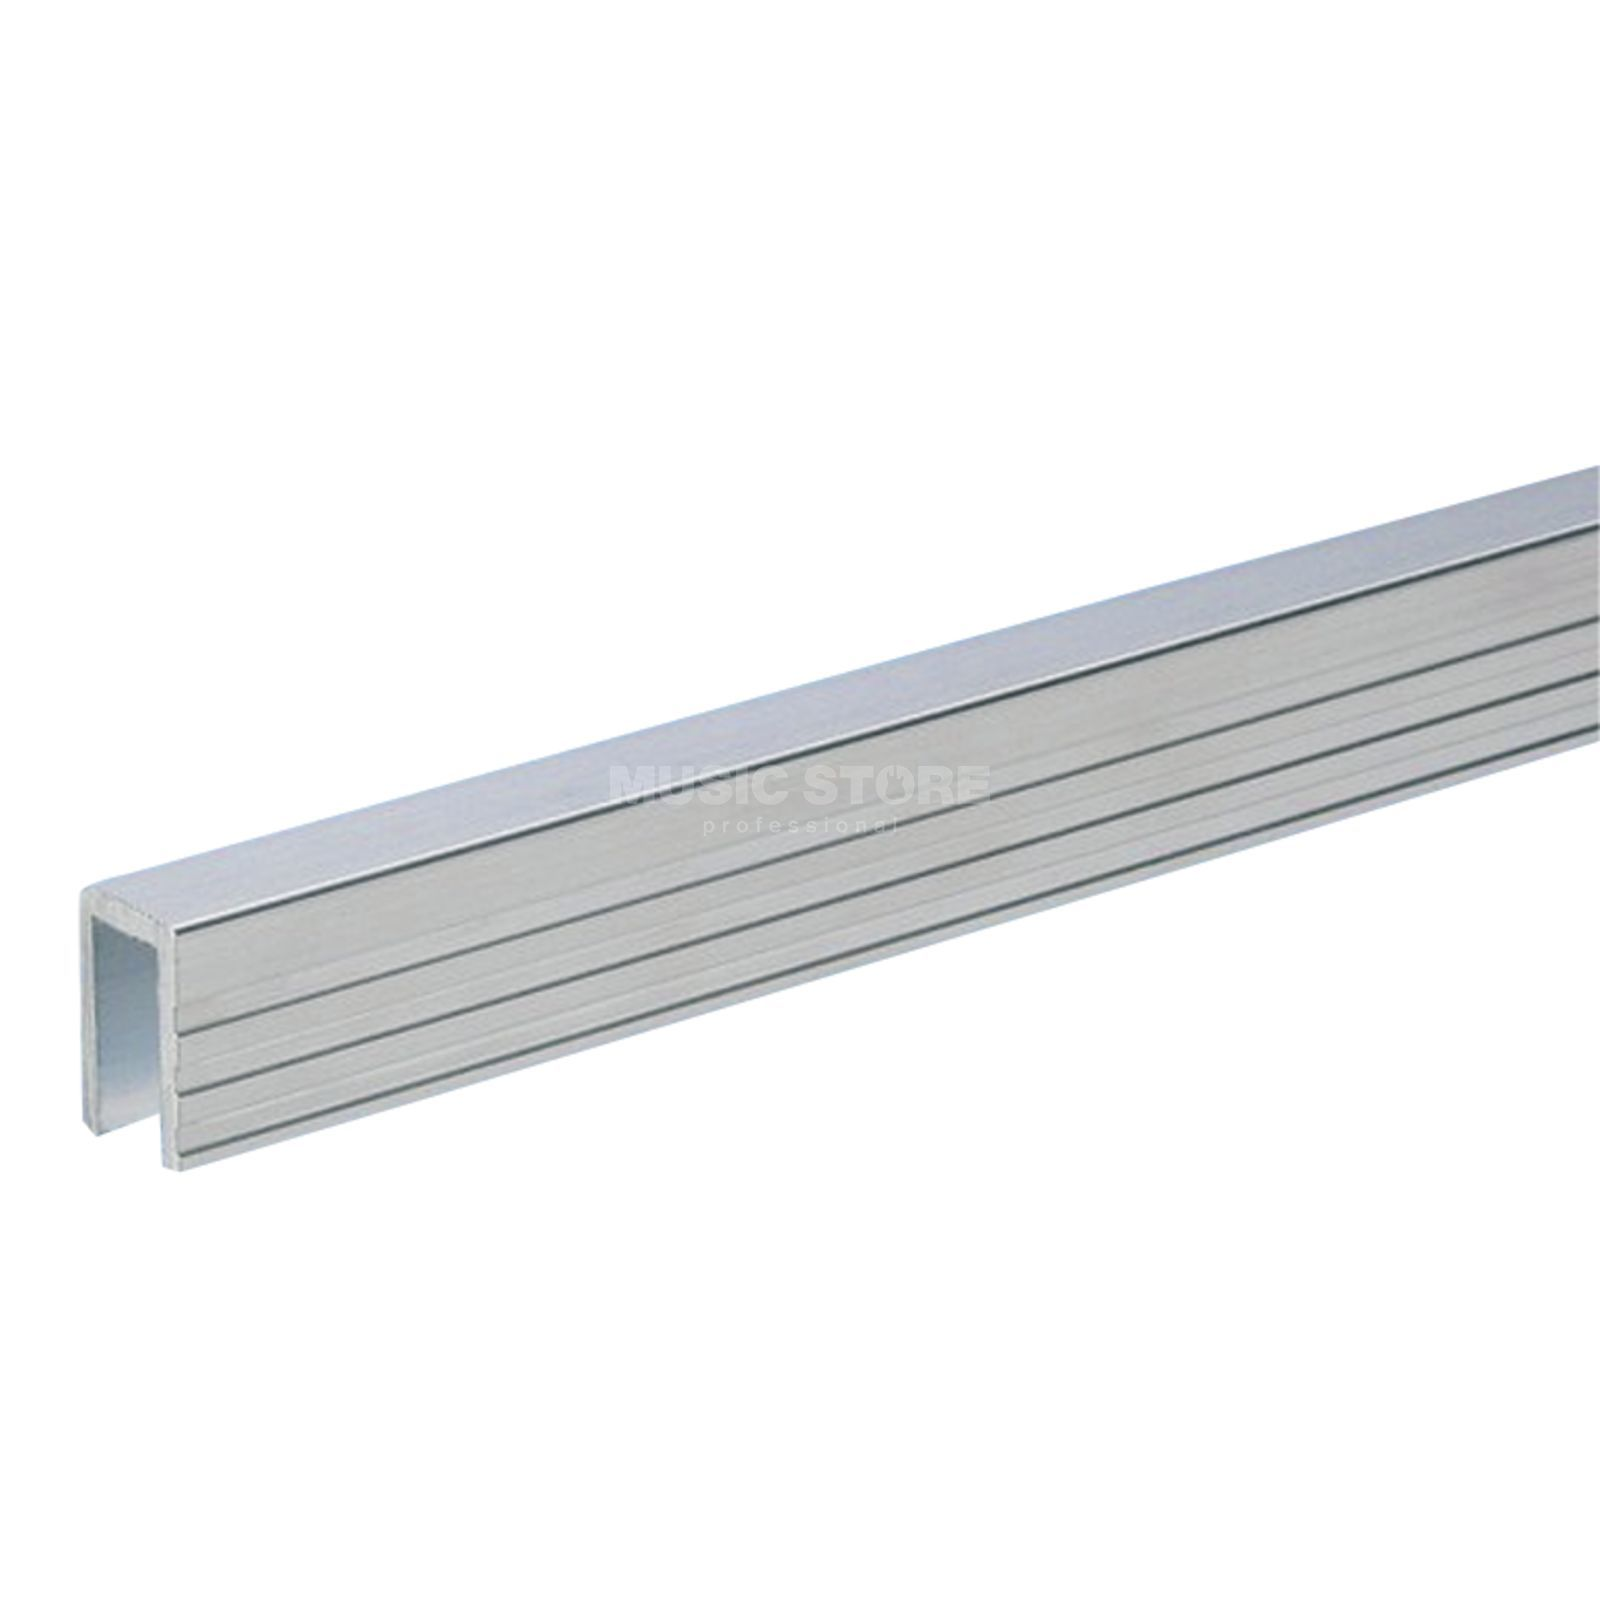 Adam Hall 6200 - Aluminium Capping Channel for 7 mm Dividing Wall Produktbillede